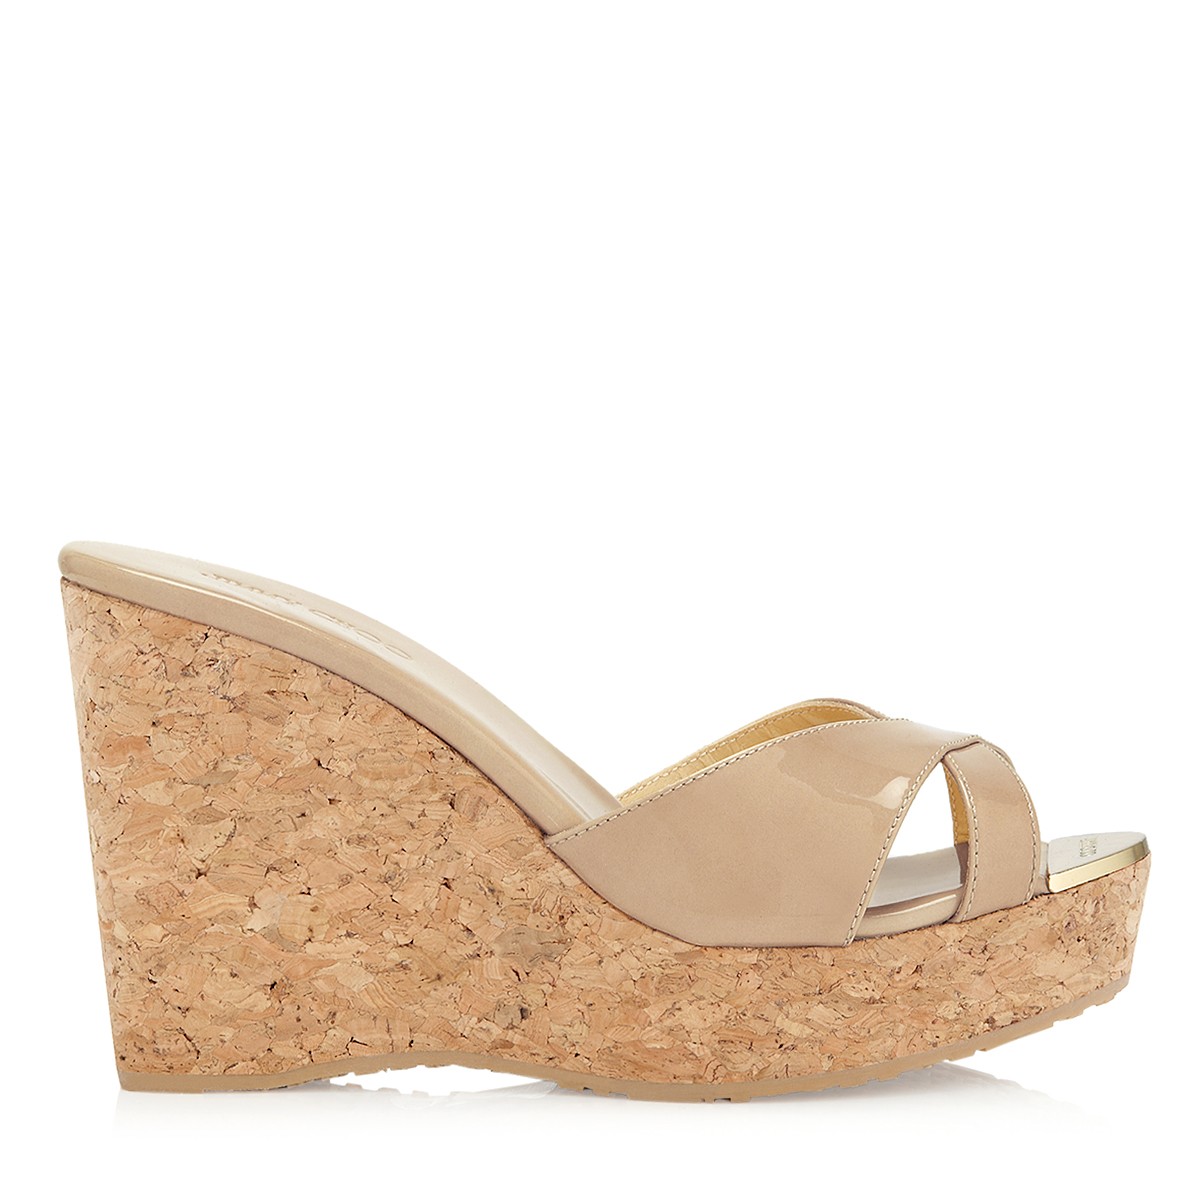 PANDORA Nude Patent Leather Wedge Sandals